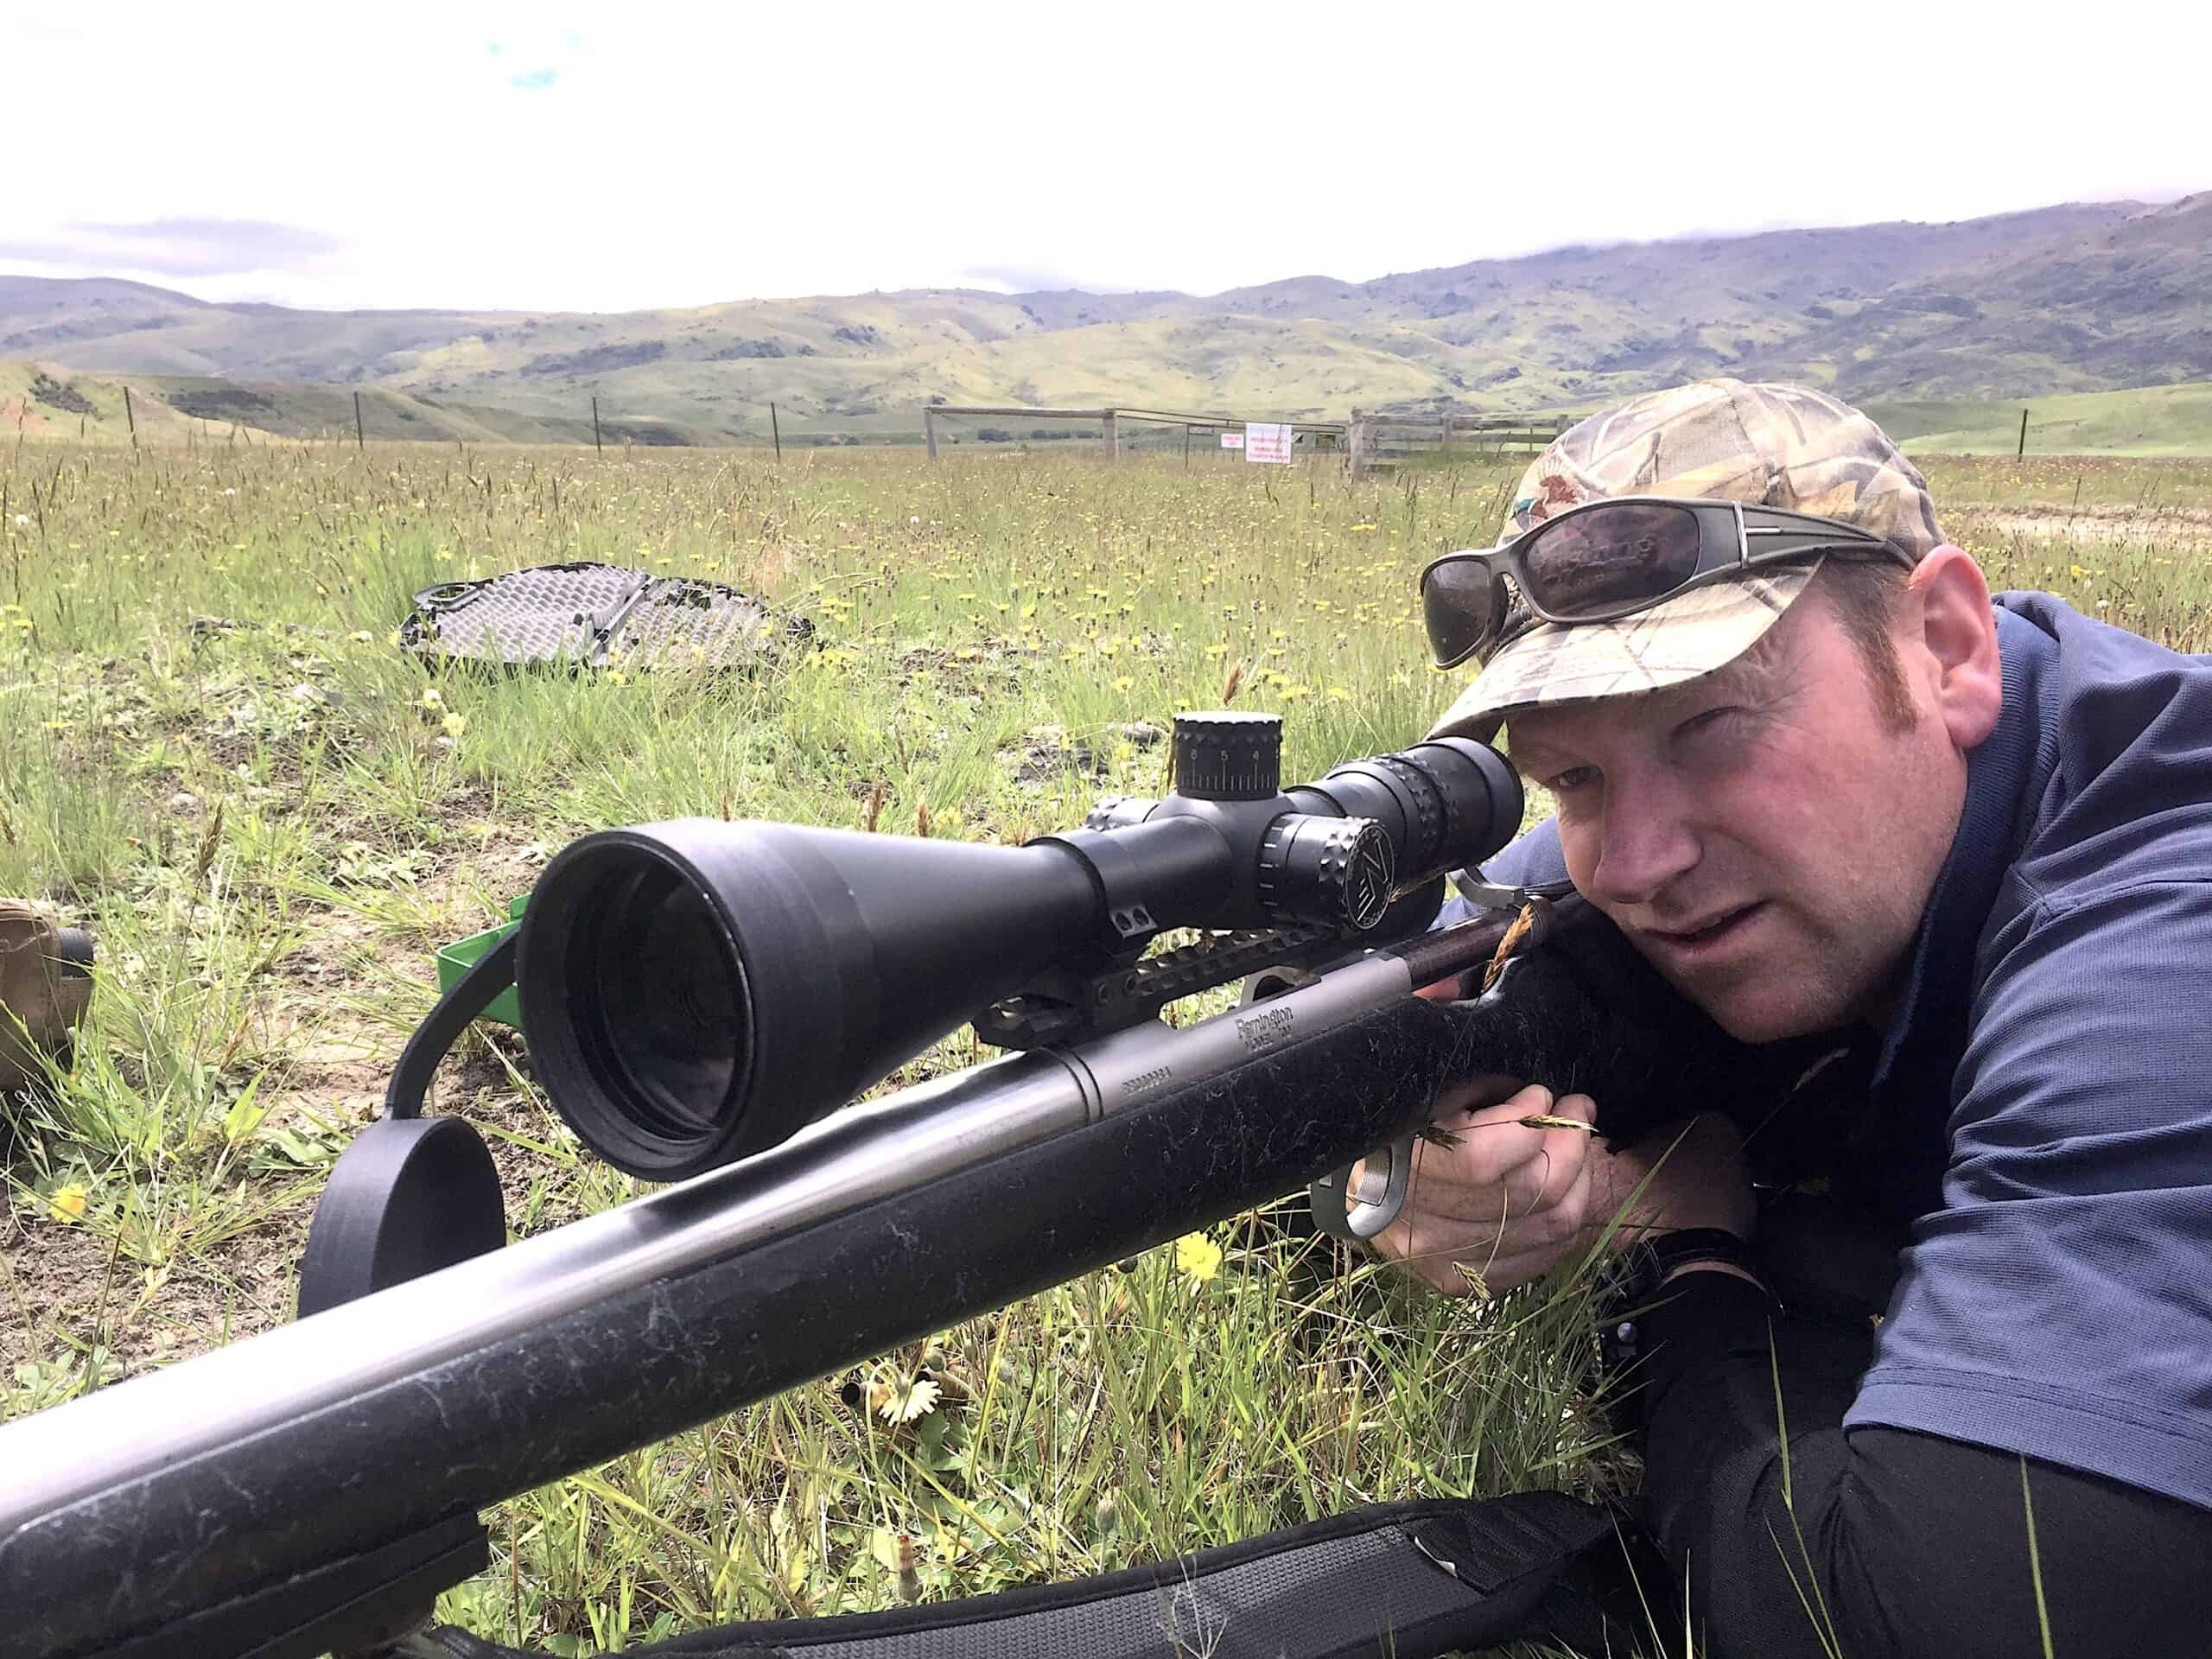 ACCU Long Range hunting and shooting products